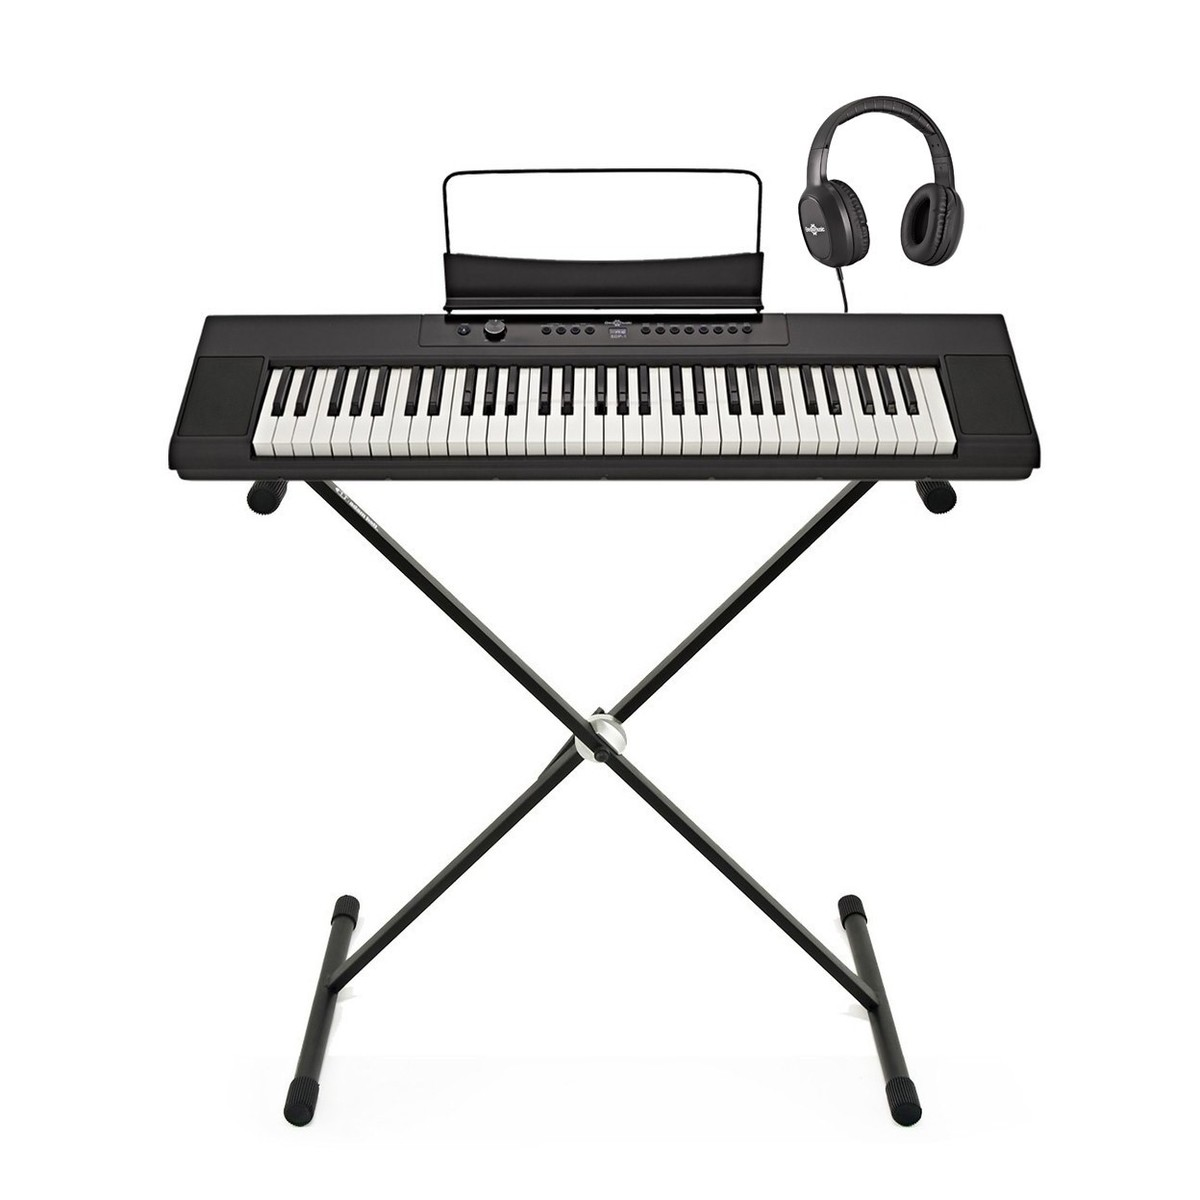 sdp 1 portable digital piano by gear4music stand and headphones at gear4music. Black Bedroom Furniture Sets. Home Design Ideas